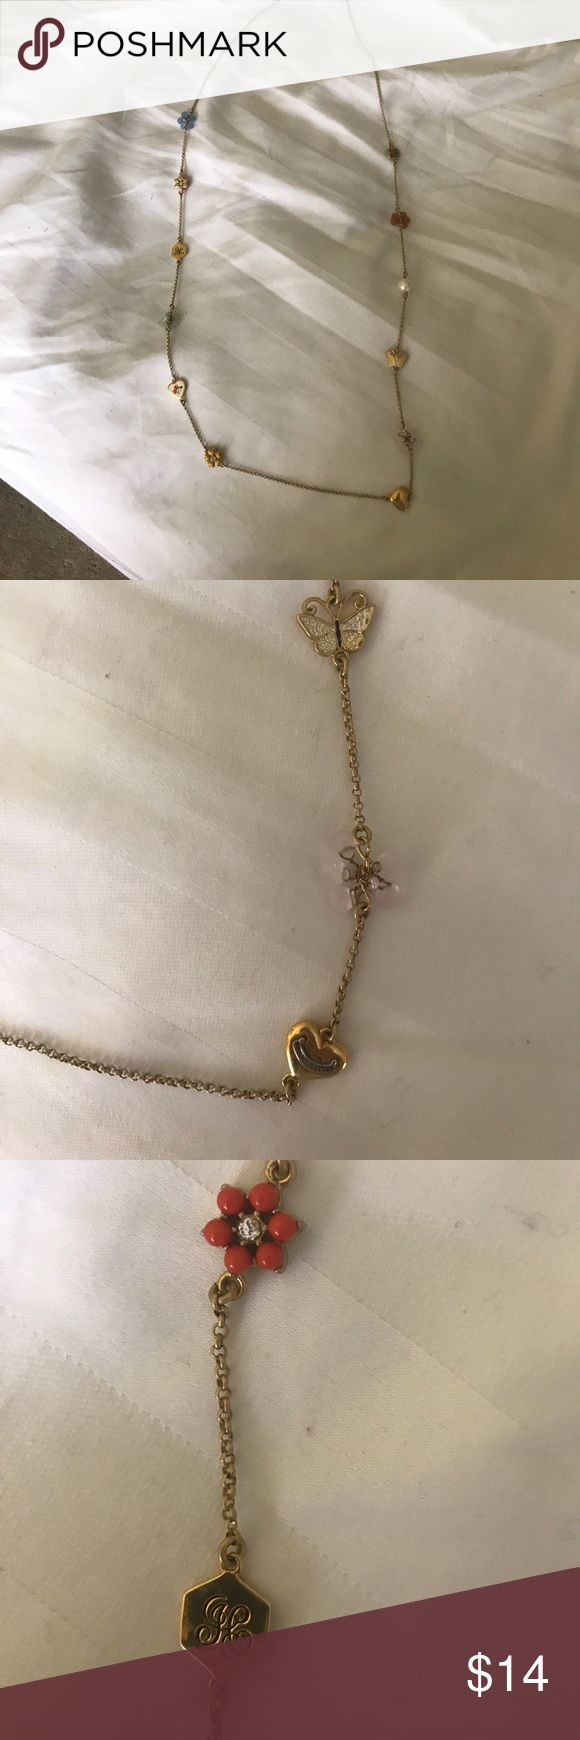 "Juicy couture long gold necklace 🦋 41"" long. Can be doubled up. Gold chain with flower, butterfly, heart and rhinestone detail! Excellent condition. Juicy Couture Jewelry Necklaces"